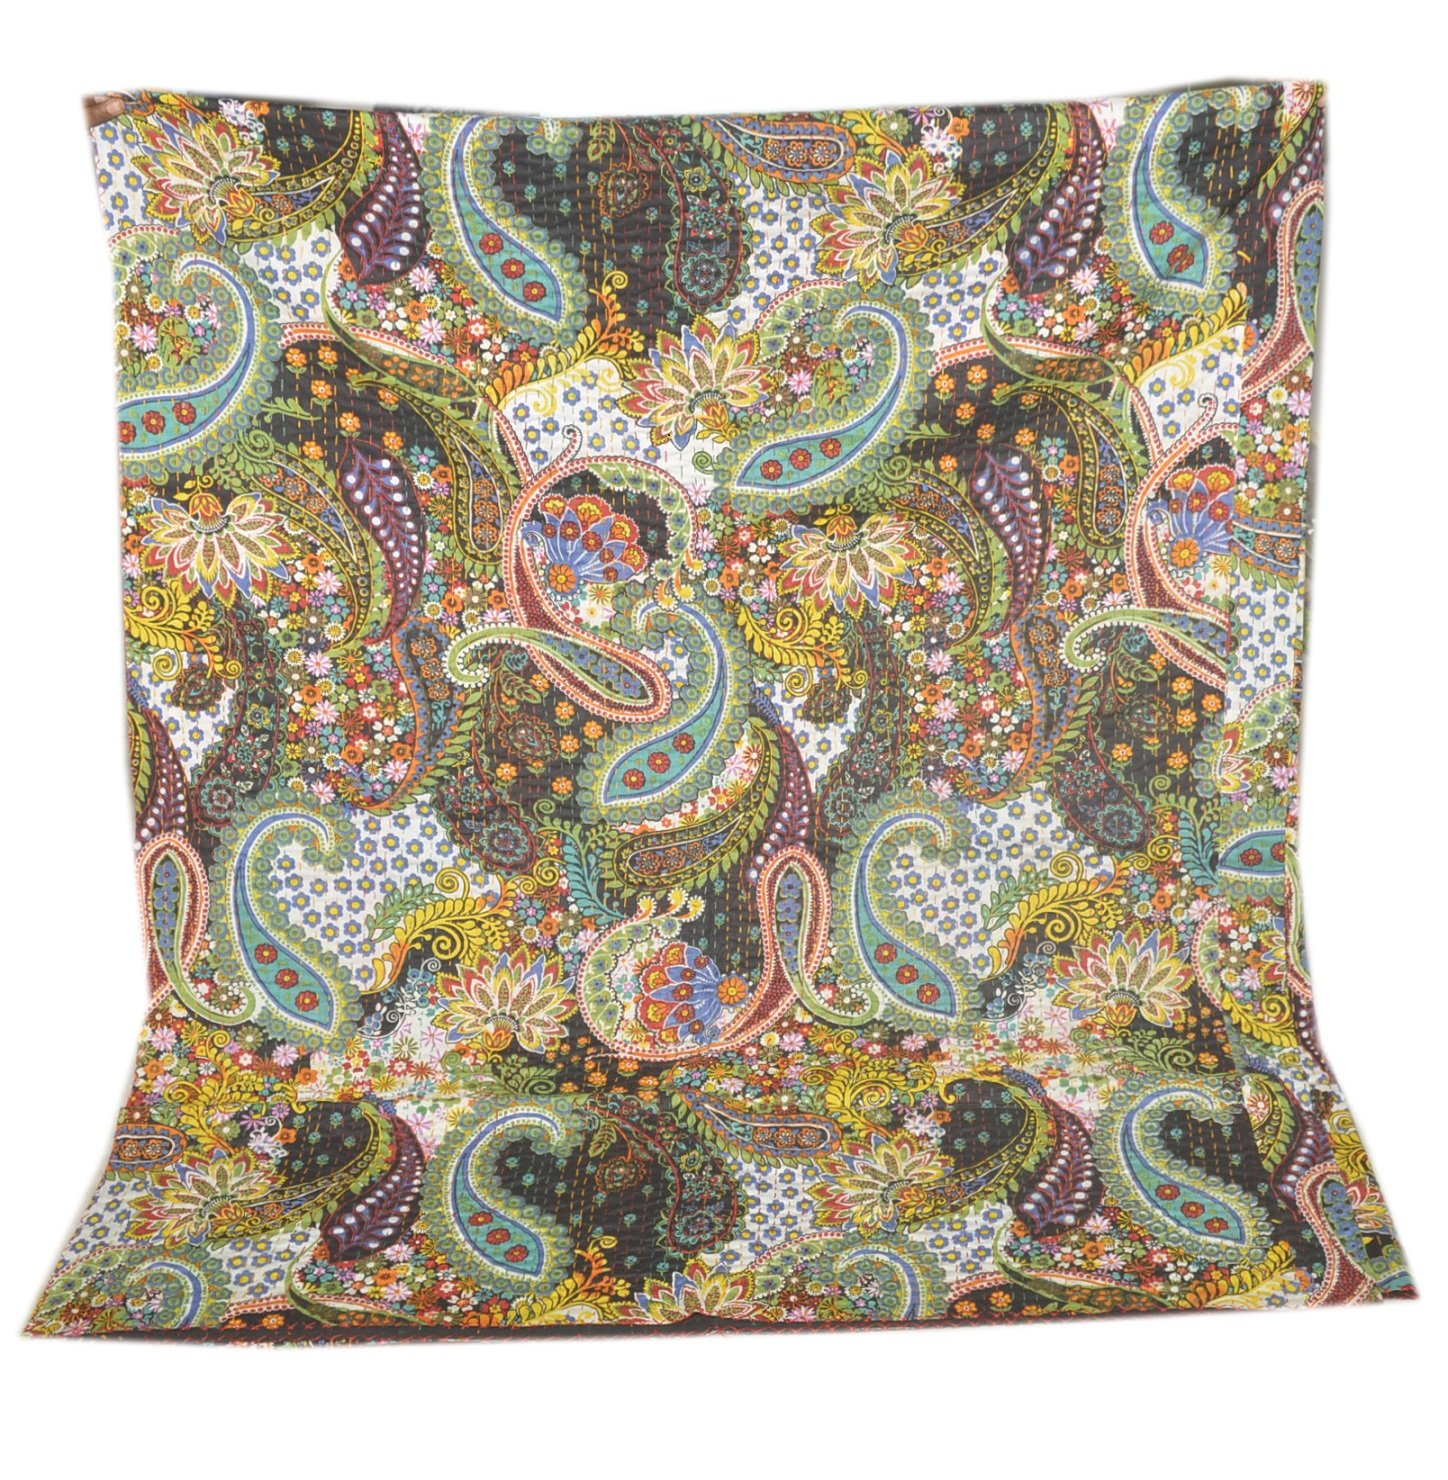 Tribal Asian Textiles Queen Kantha Quilt In Black paisley, Kantha Blanket Bedding Bedspread Throw by Tribal Asian Textiles (Image #2)